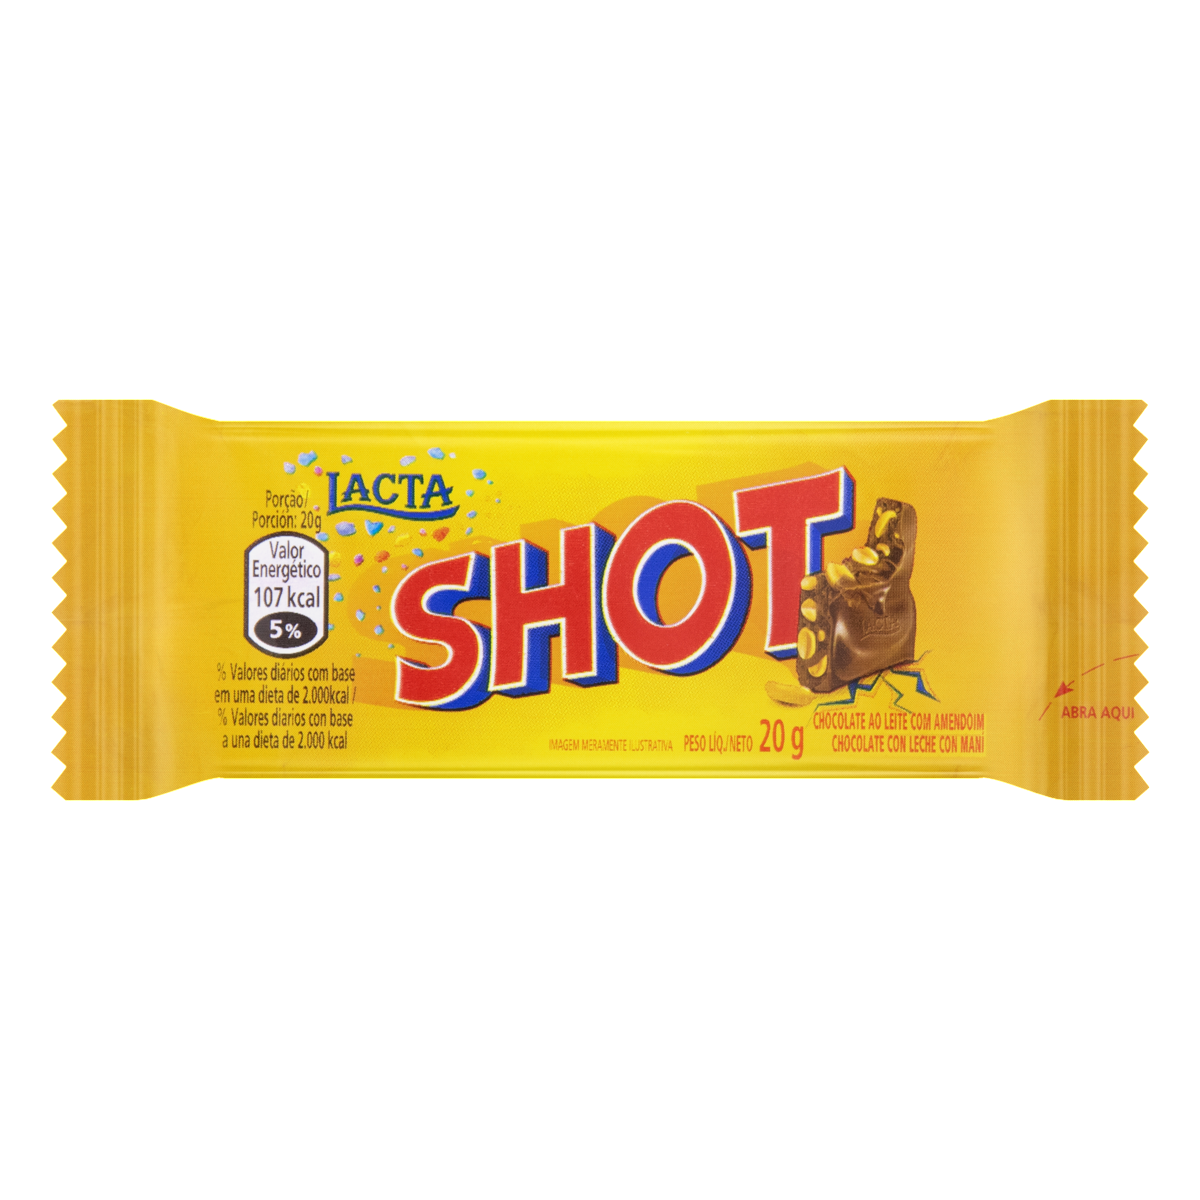 7896019355216 - CHOCOLATE LACTA SHOT